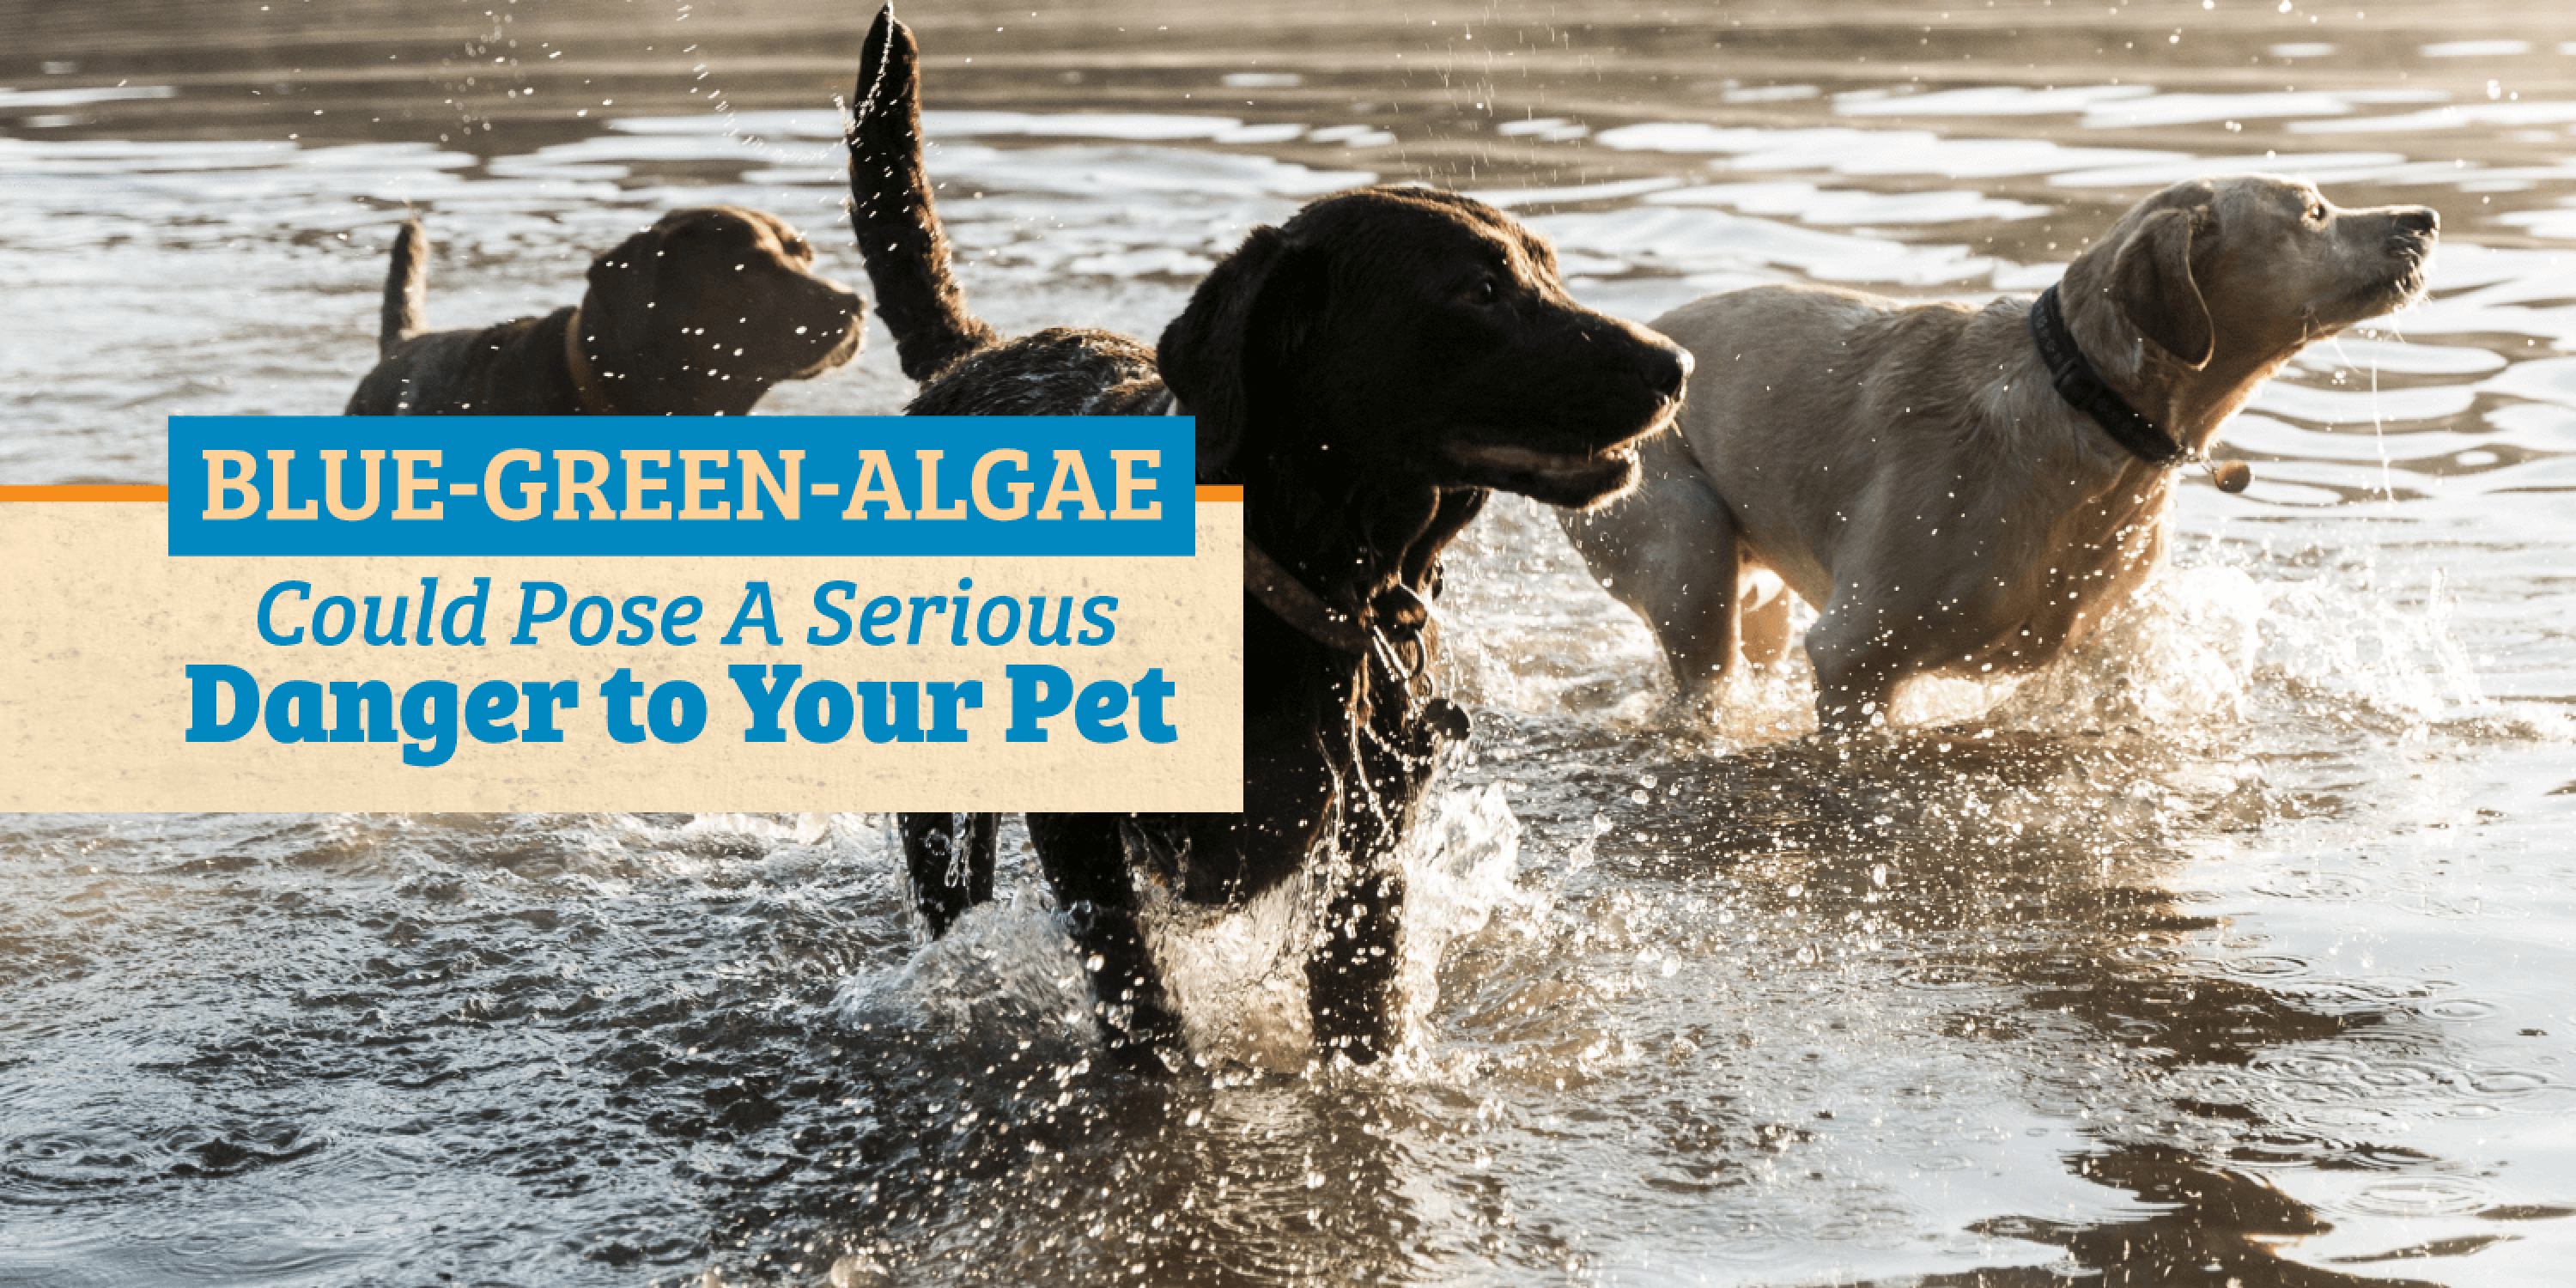 Blue-Green Algae Could Pose A Serious Danger to Your Pet